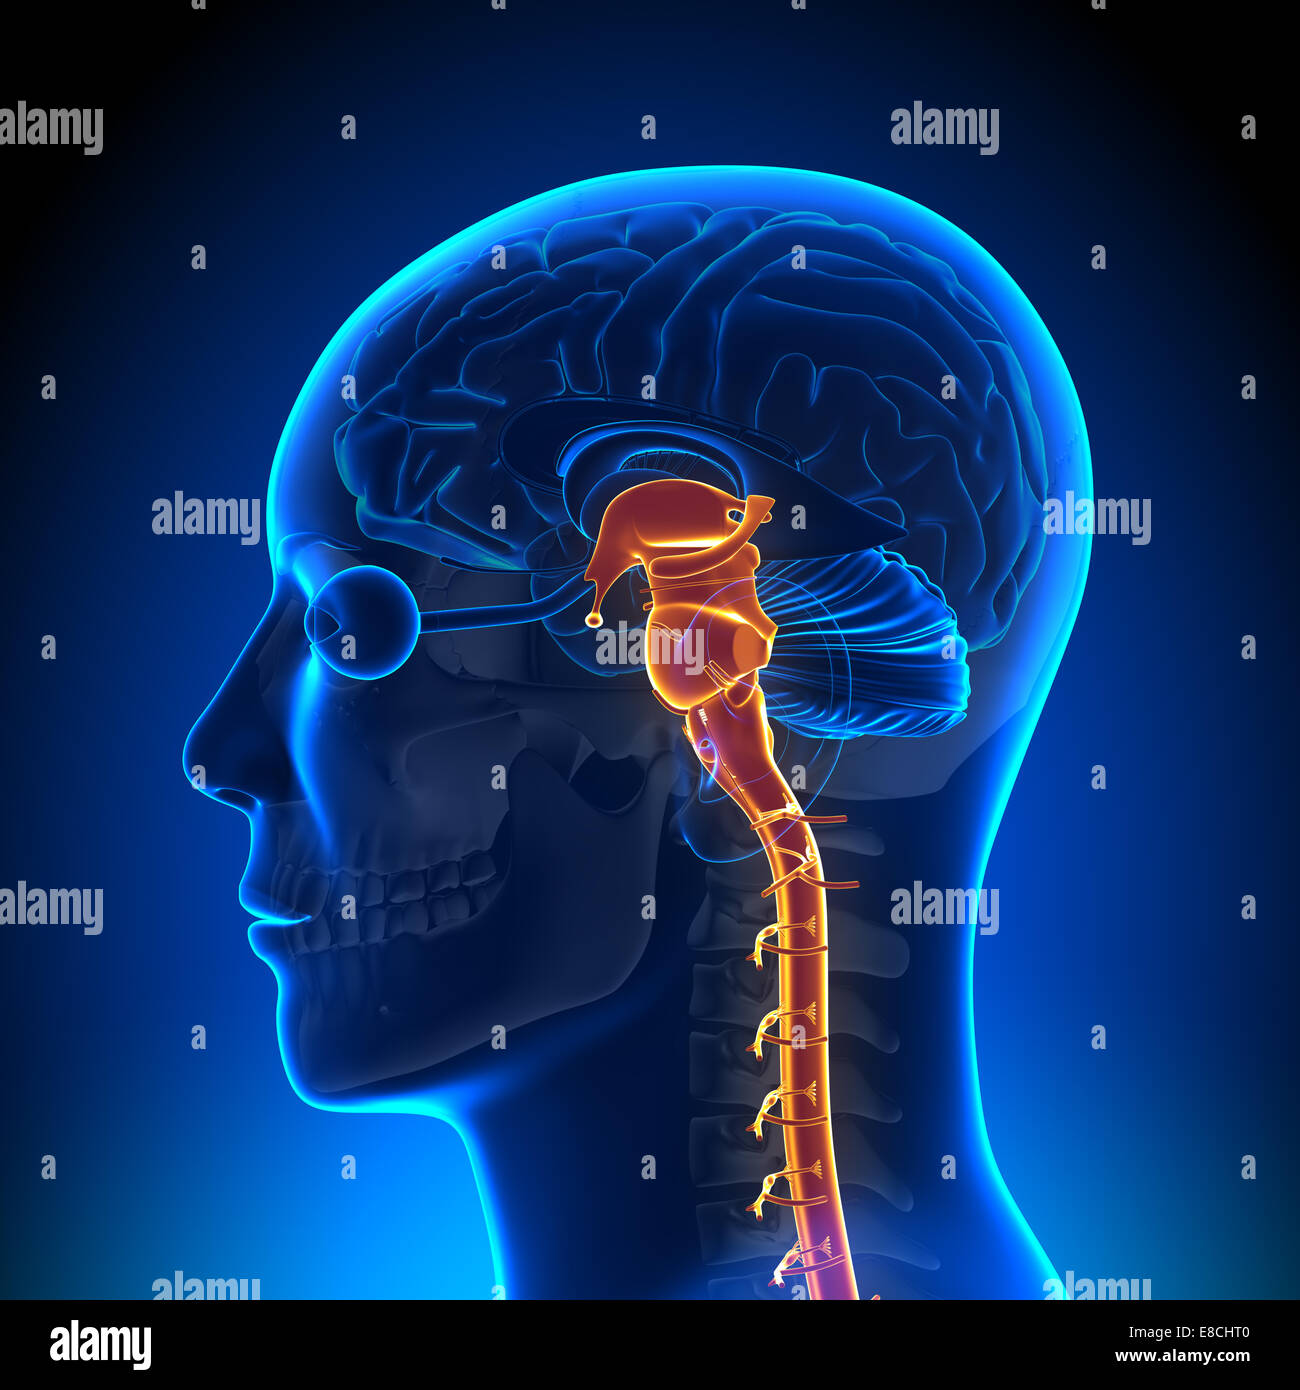 Spinal cord Nerves - Brain Anatomy Stock Photo: 74036144 - Alamy